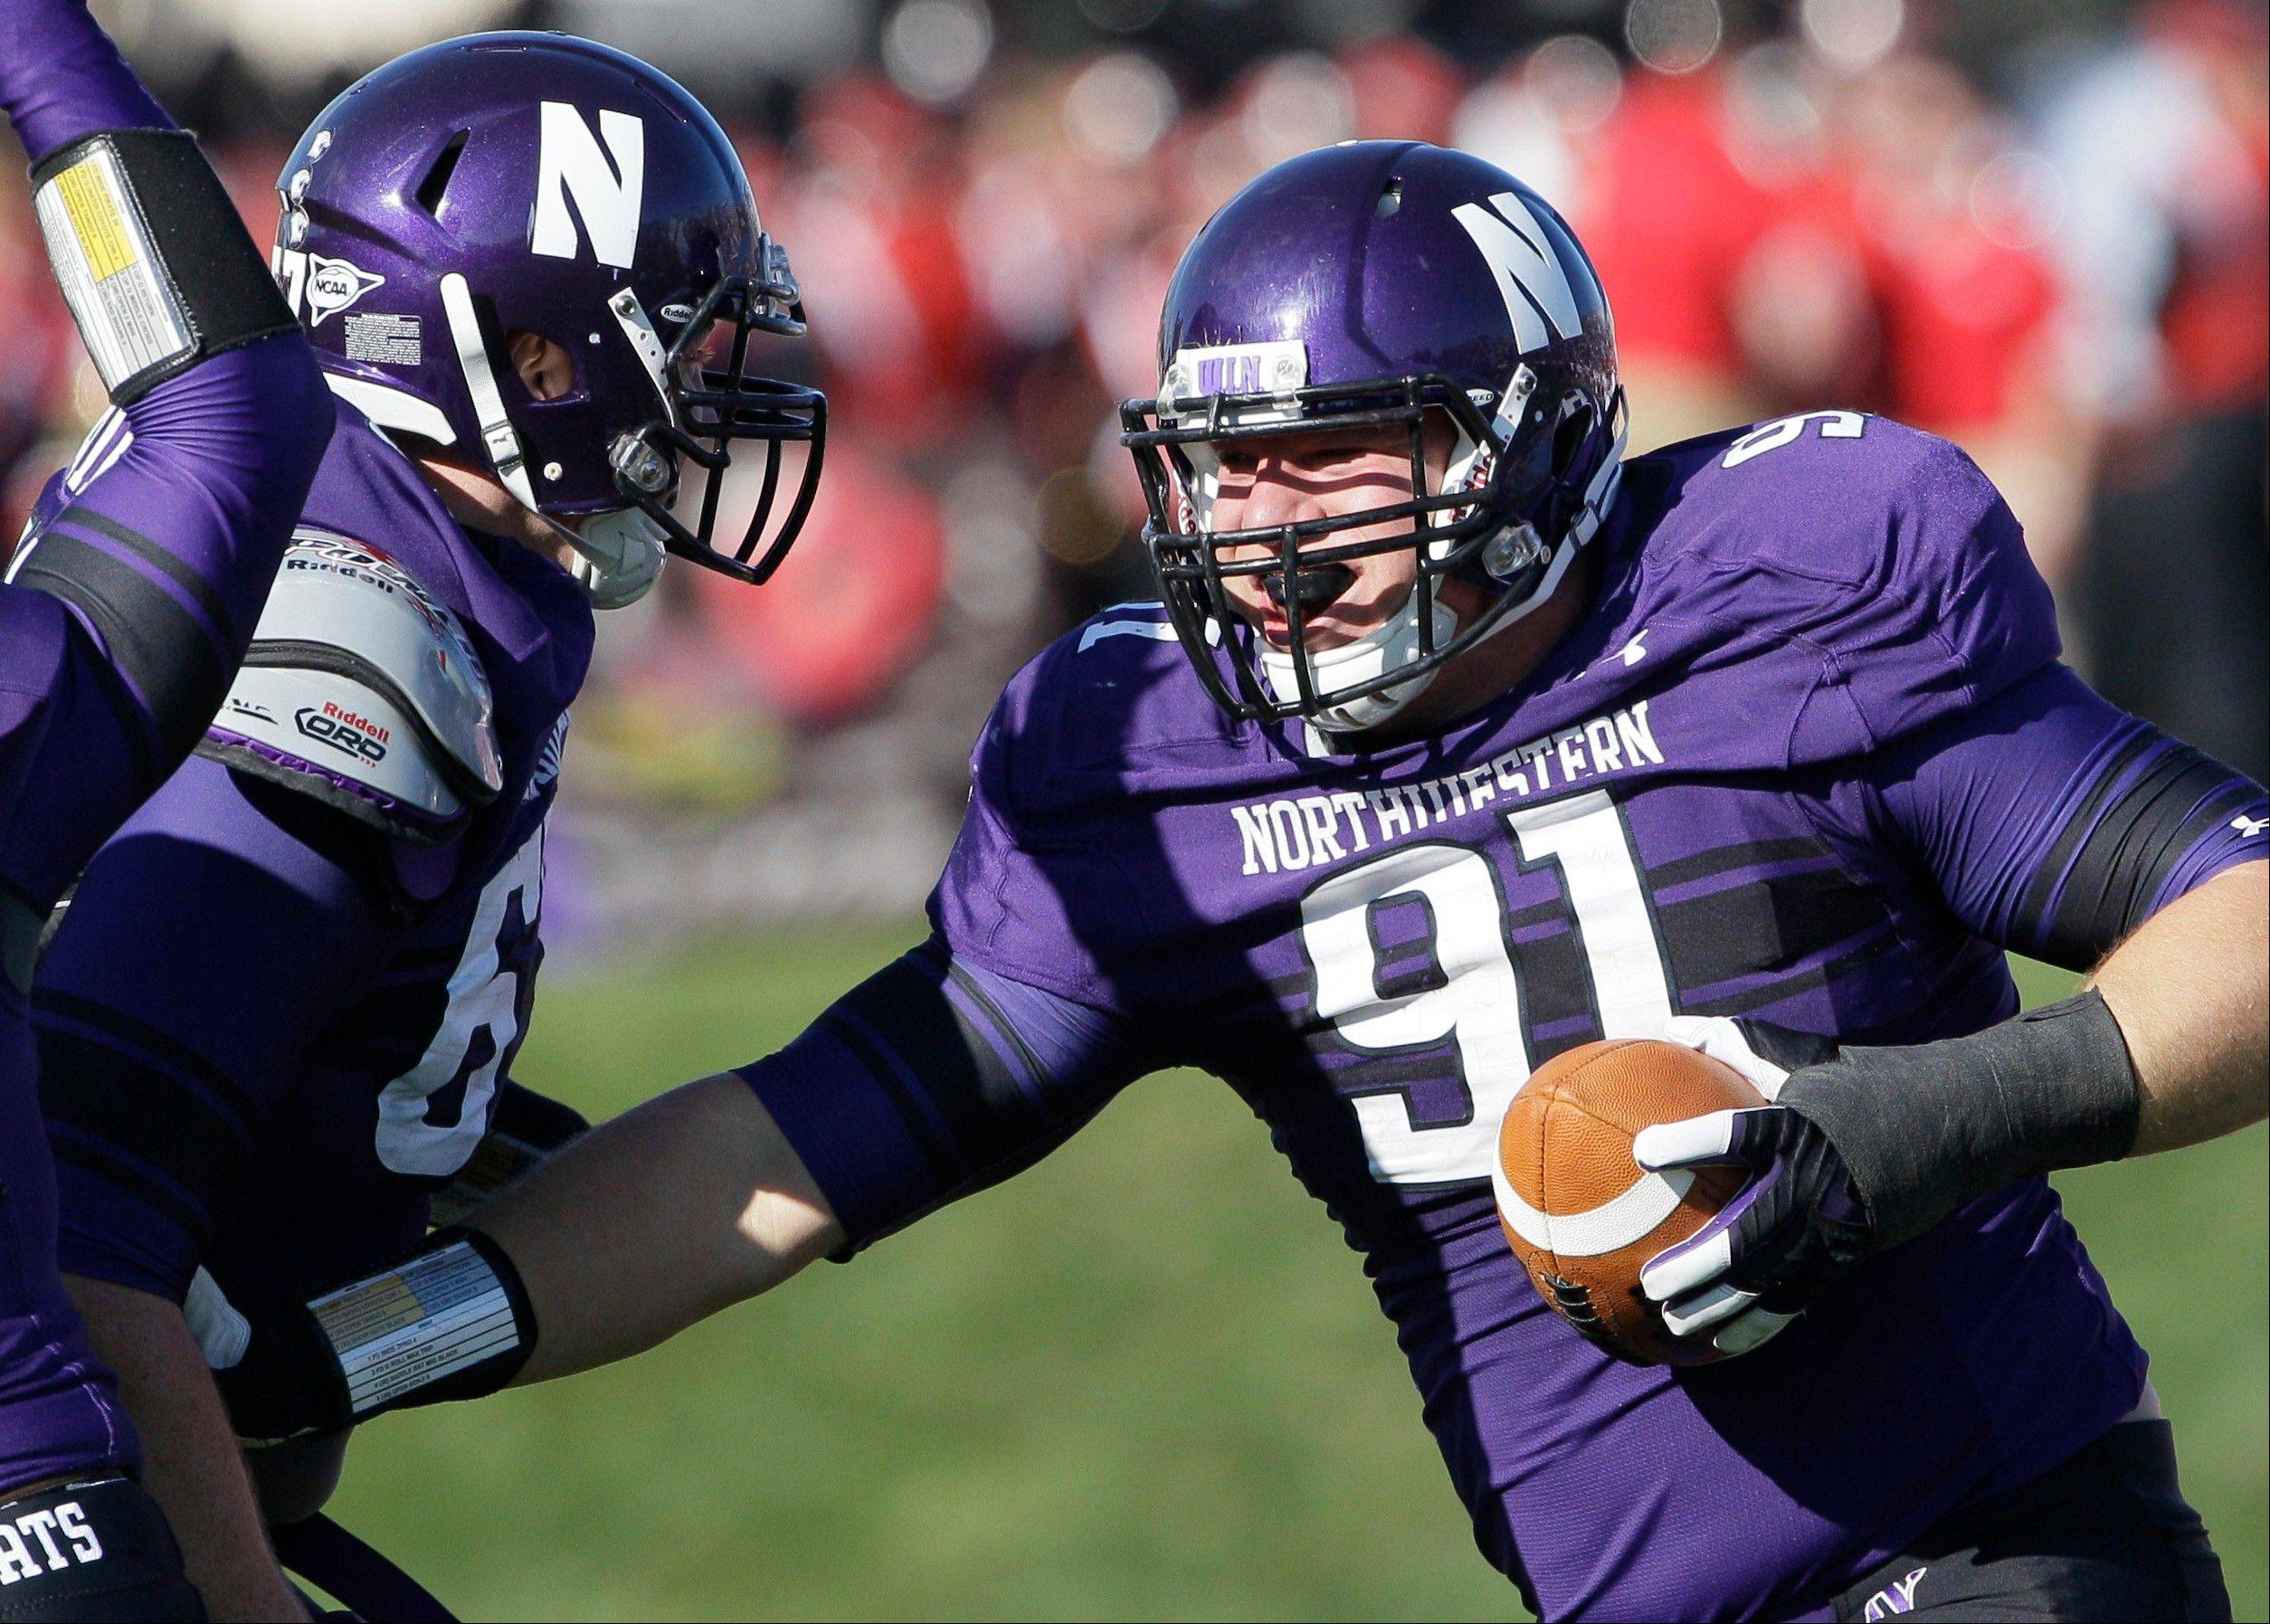 Northwestern a confident bunch after 4-0 start